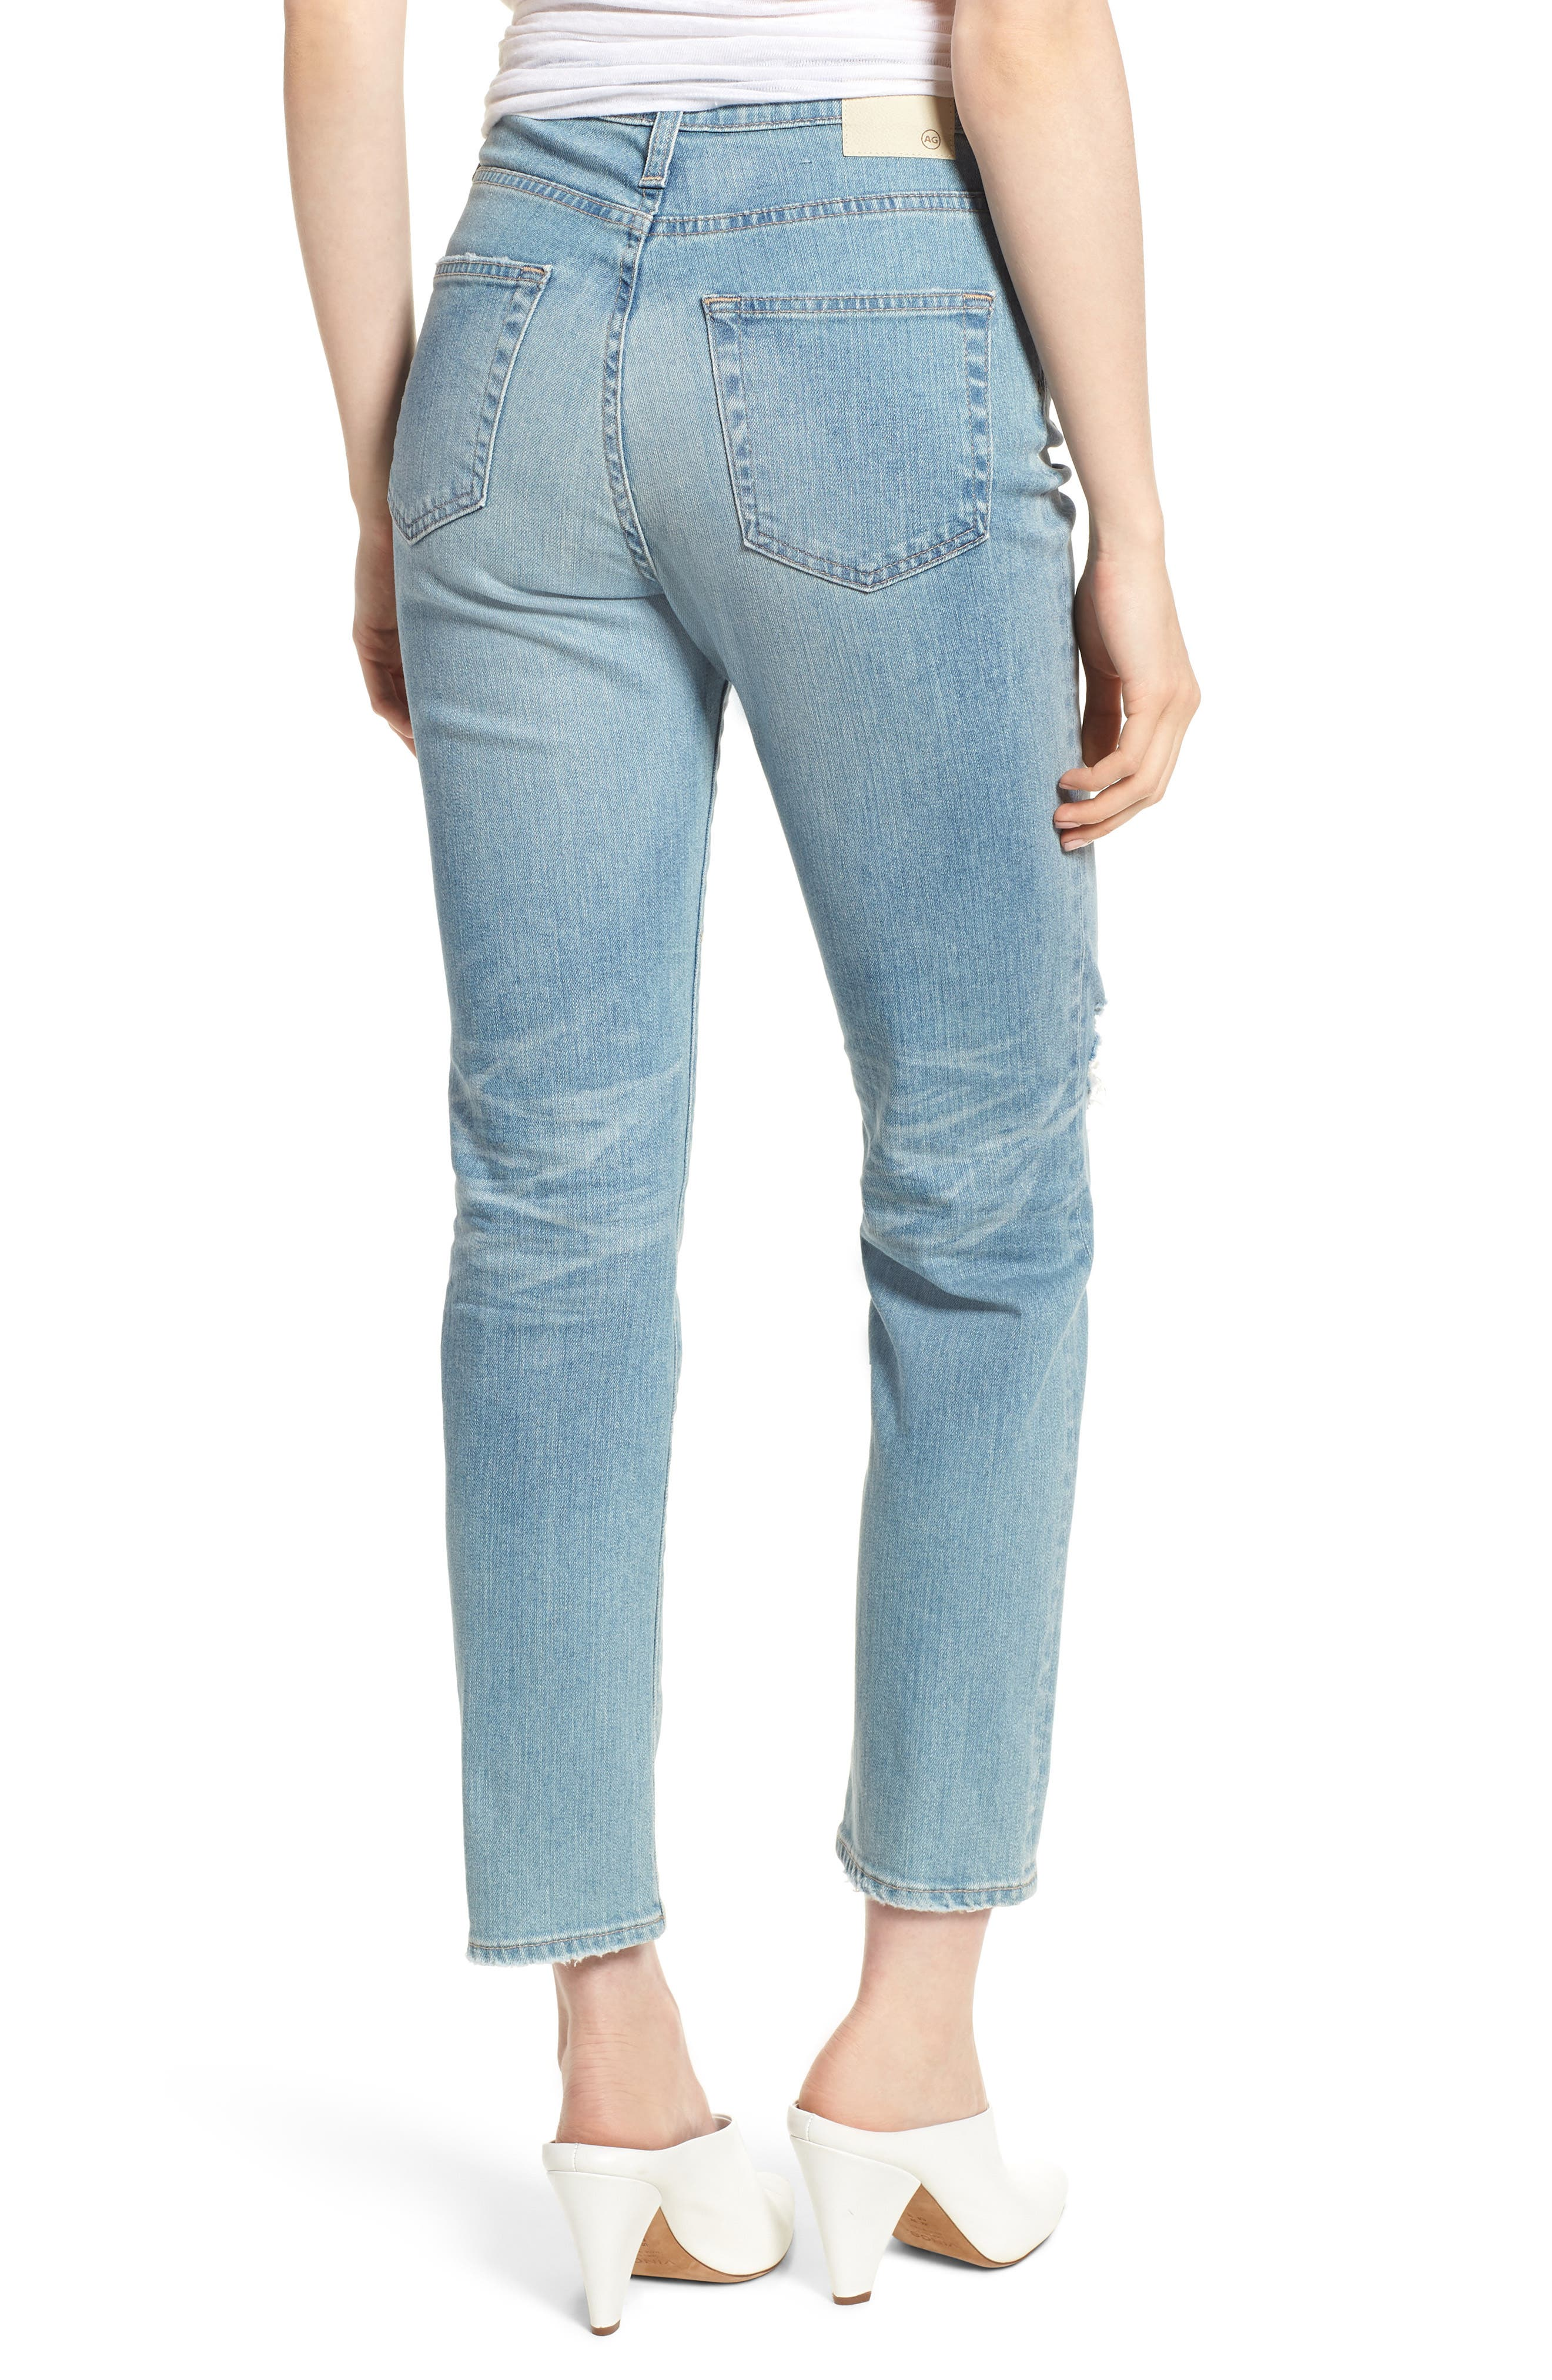 'The Phoebe' Vintage High Rise Straight Leg Jeans,                             Alternate thumbnail 2, color,                             18 Years Headlands